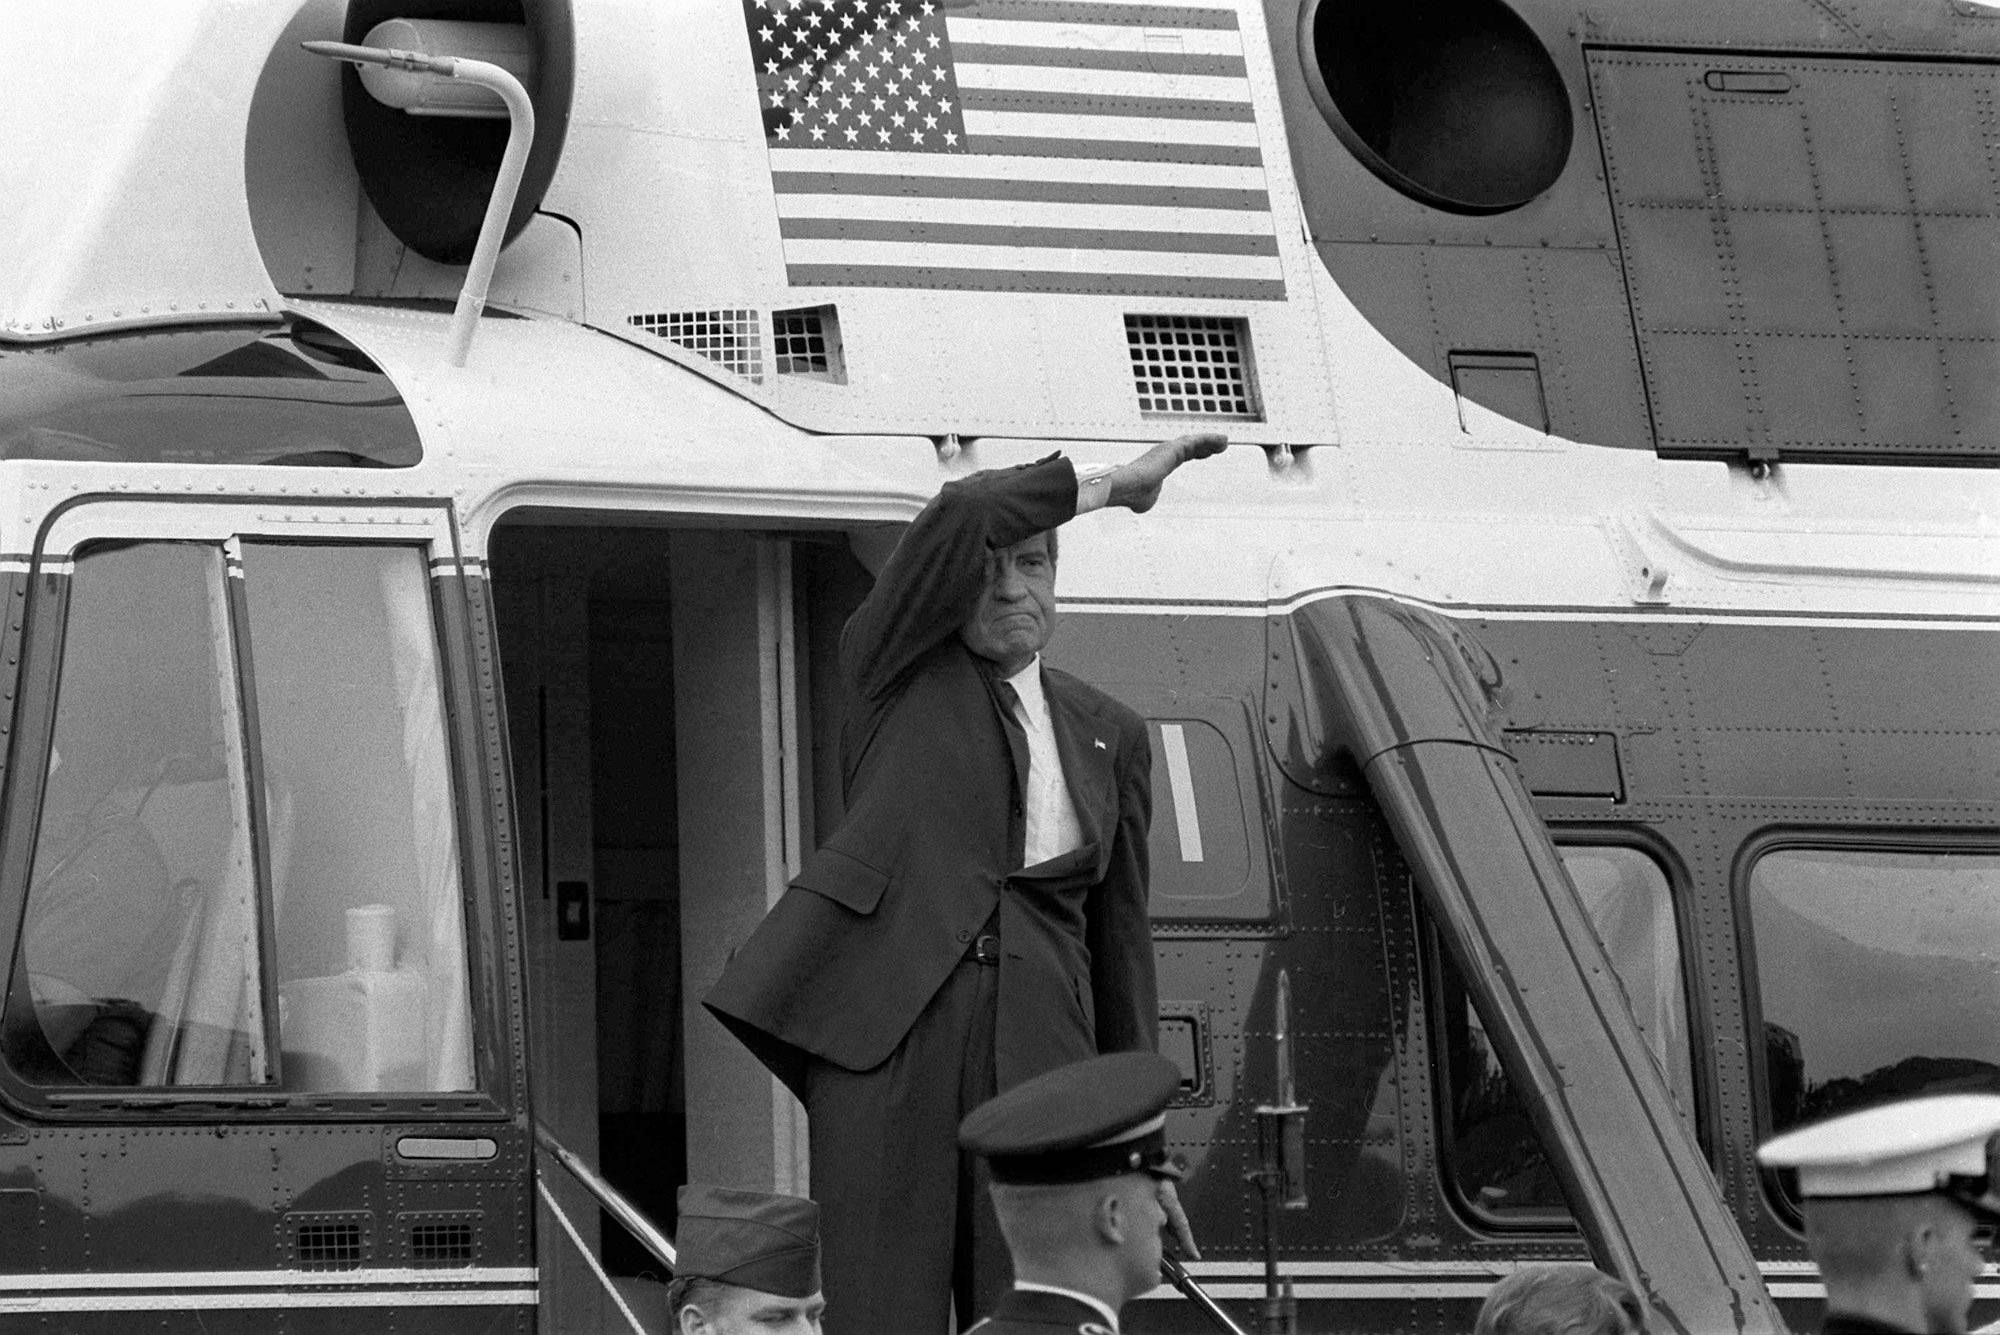 On the day of his resignation, Aug. 9, 1974, Richard M. Nixon waves goodbye from the steps of his helicopter as he leaves the White House following a farewell address to his staff. The Watergate scandal forced Nixon to become the first U.S. president to resign from office.